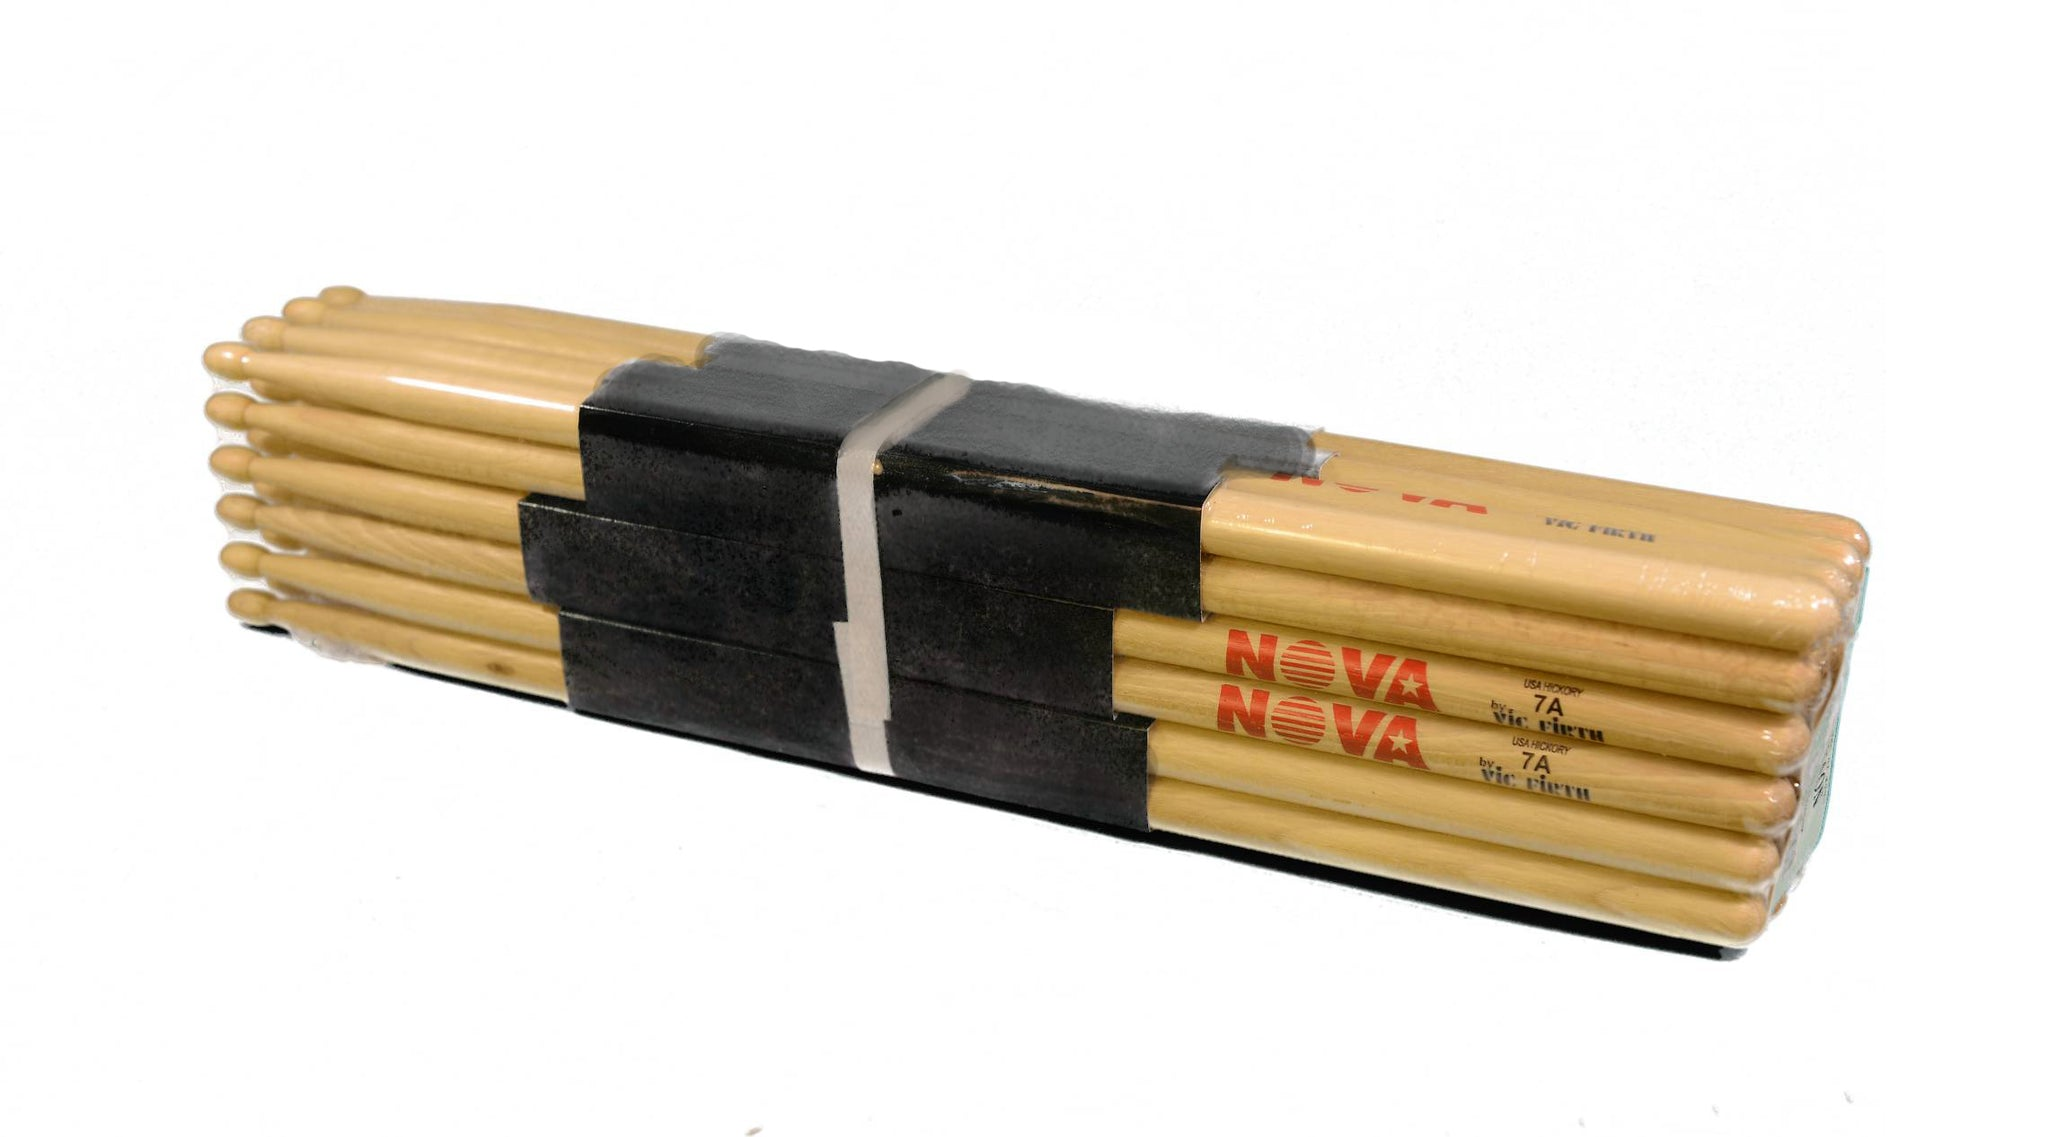 12 Pairs One Brick Vic Firth Nova wood tip 7A drum sticks